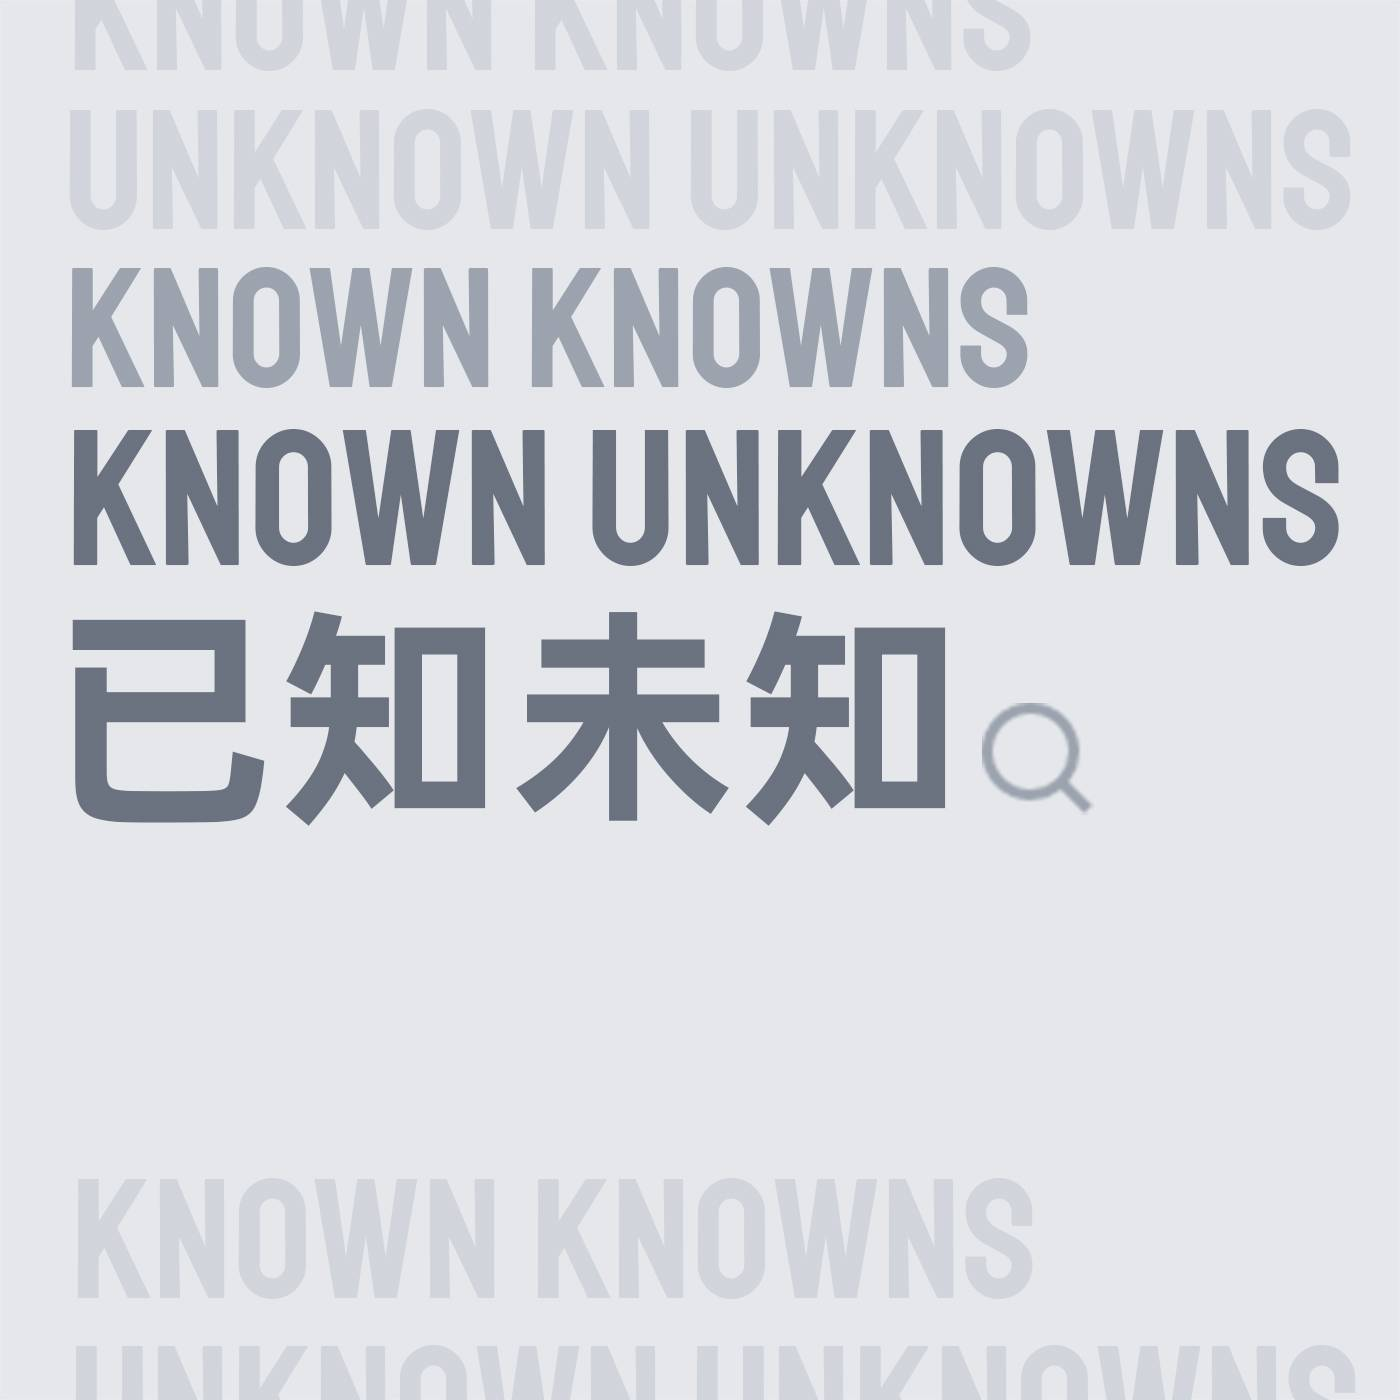 已知未知 Known Unknowns